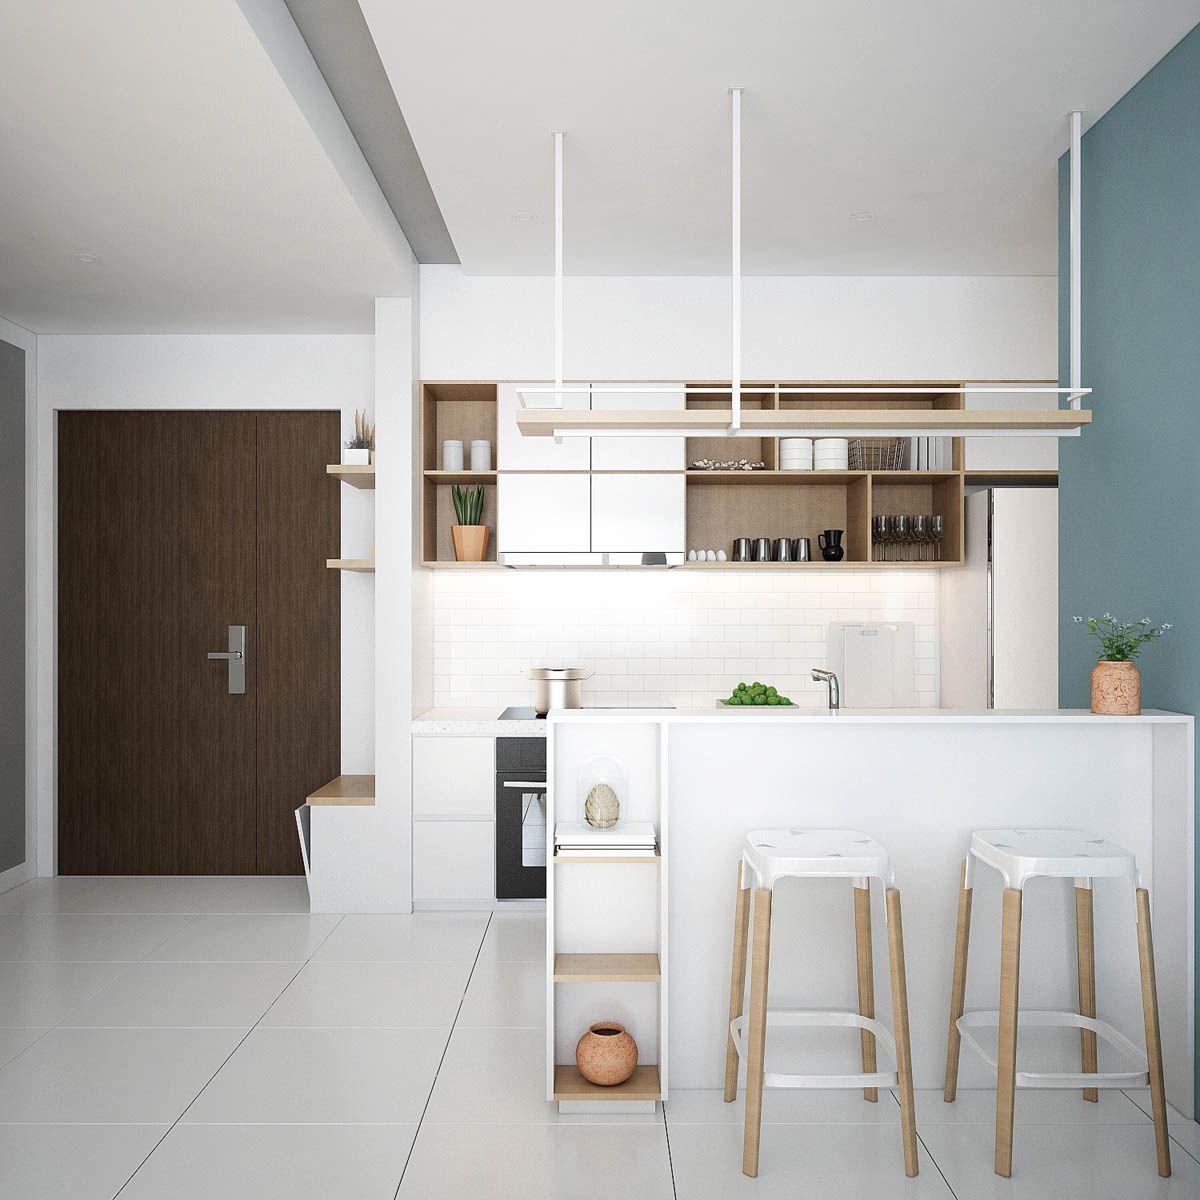 Scandinavian Kitchens Find Your Style Here: Small Modern Apartment Design With Asian And Scandinavian